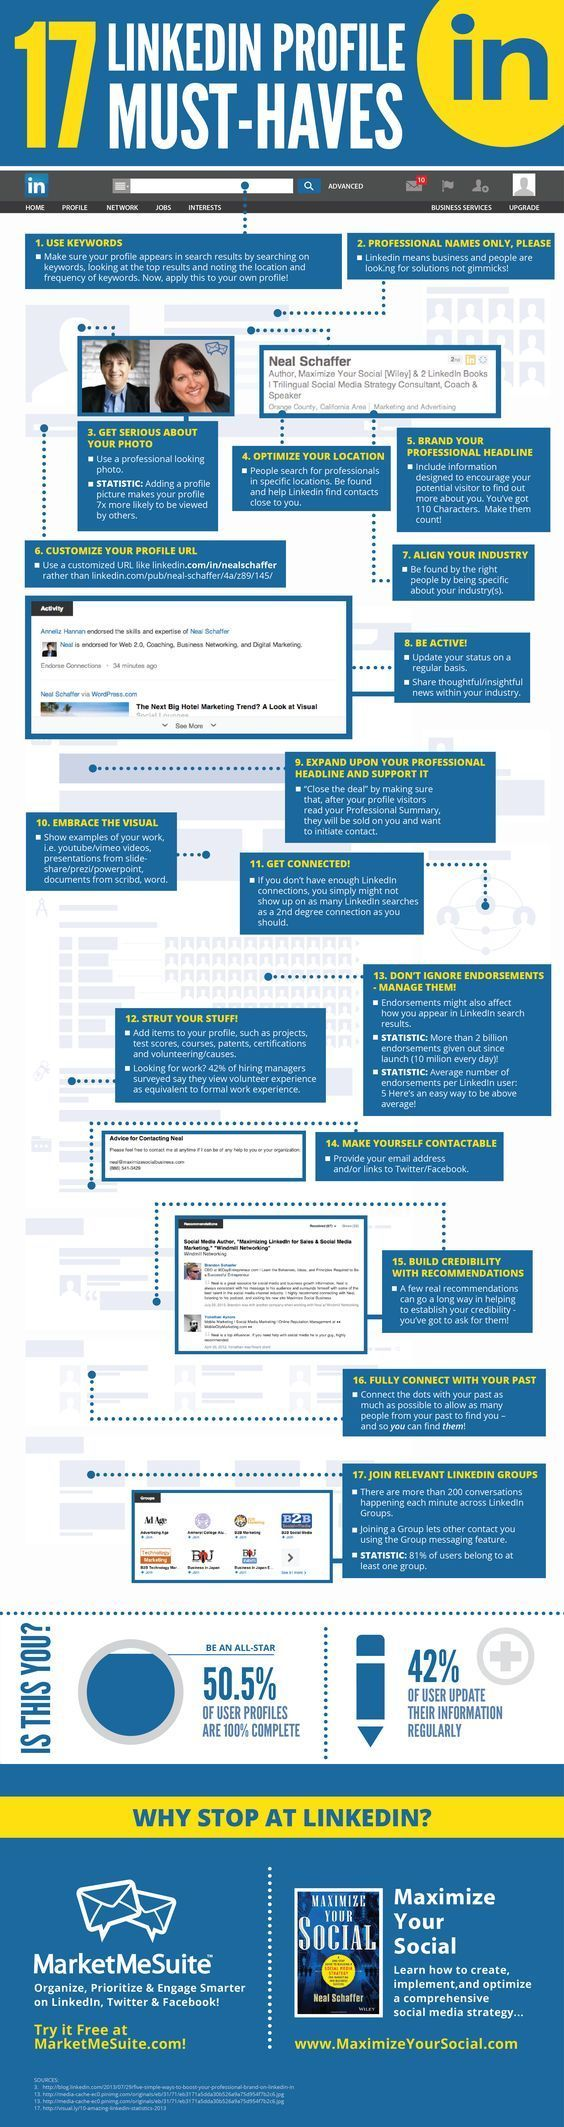 Professional Linkedin Profile: A Checklist of 17 Must-Have Items